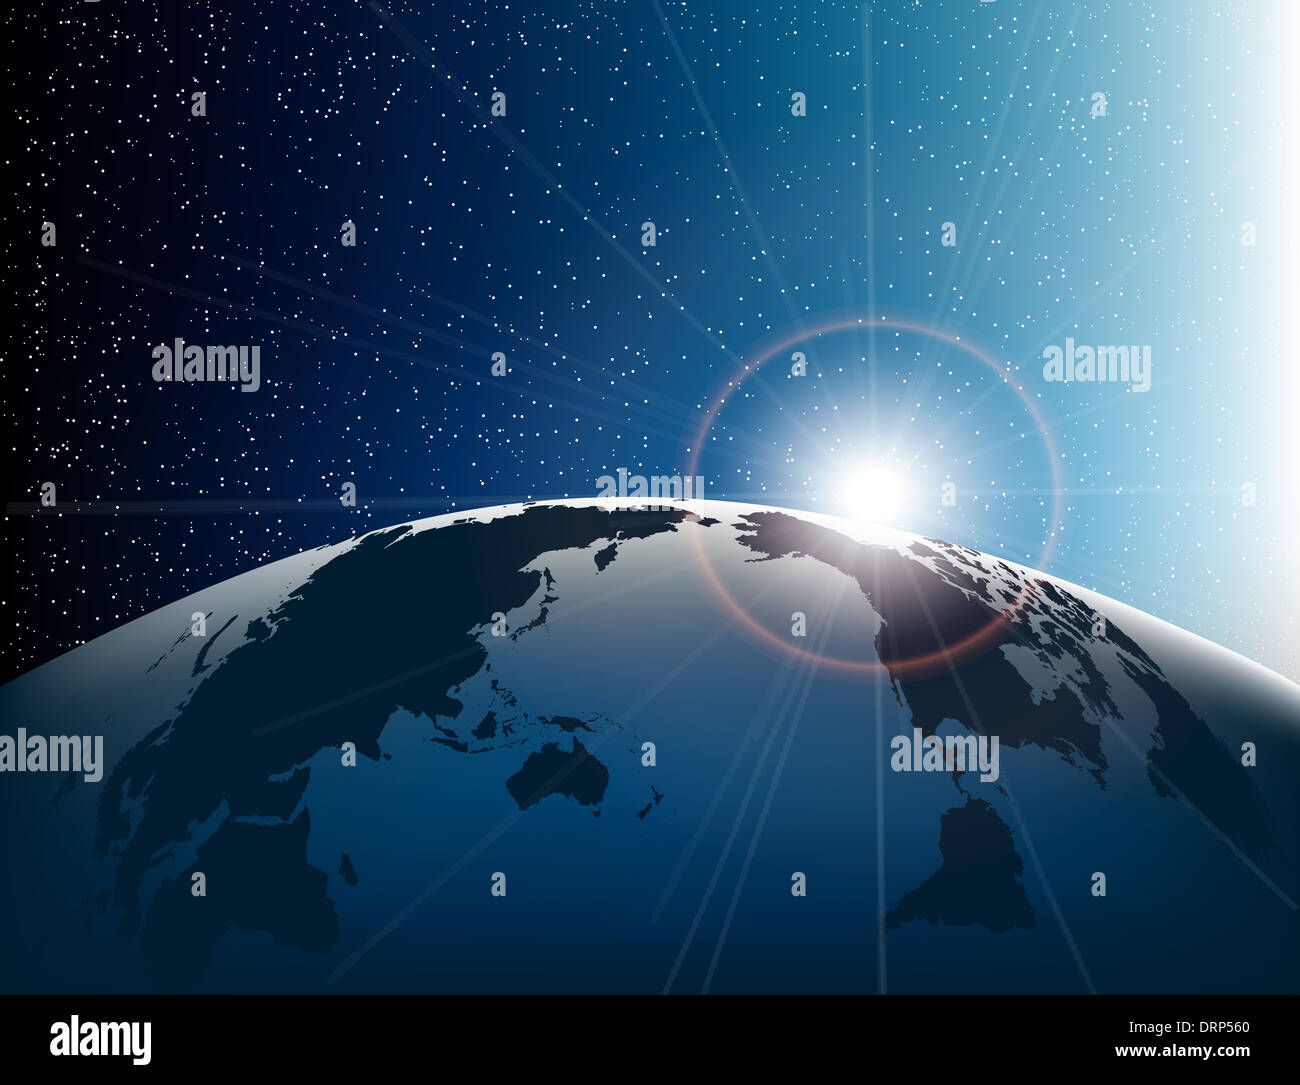 Space, Earth and stars - Stock Image